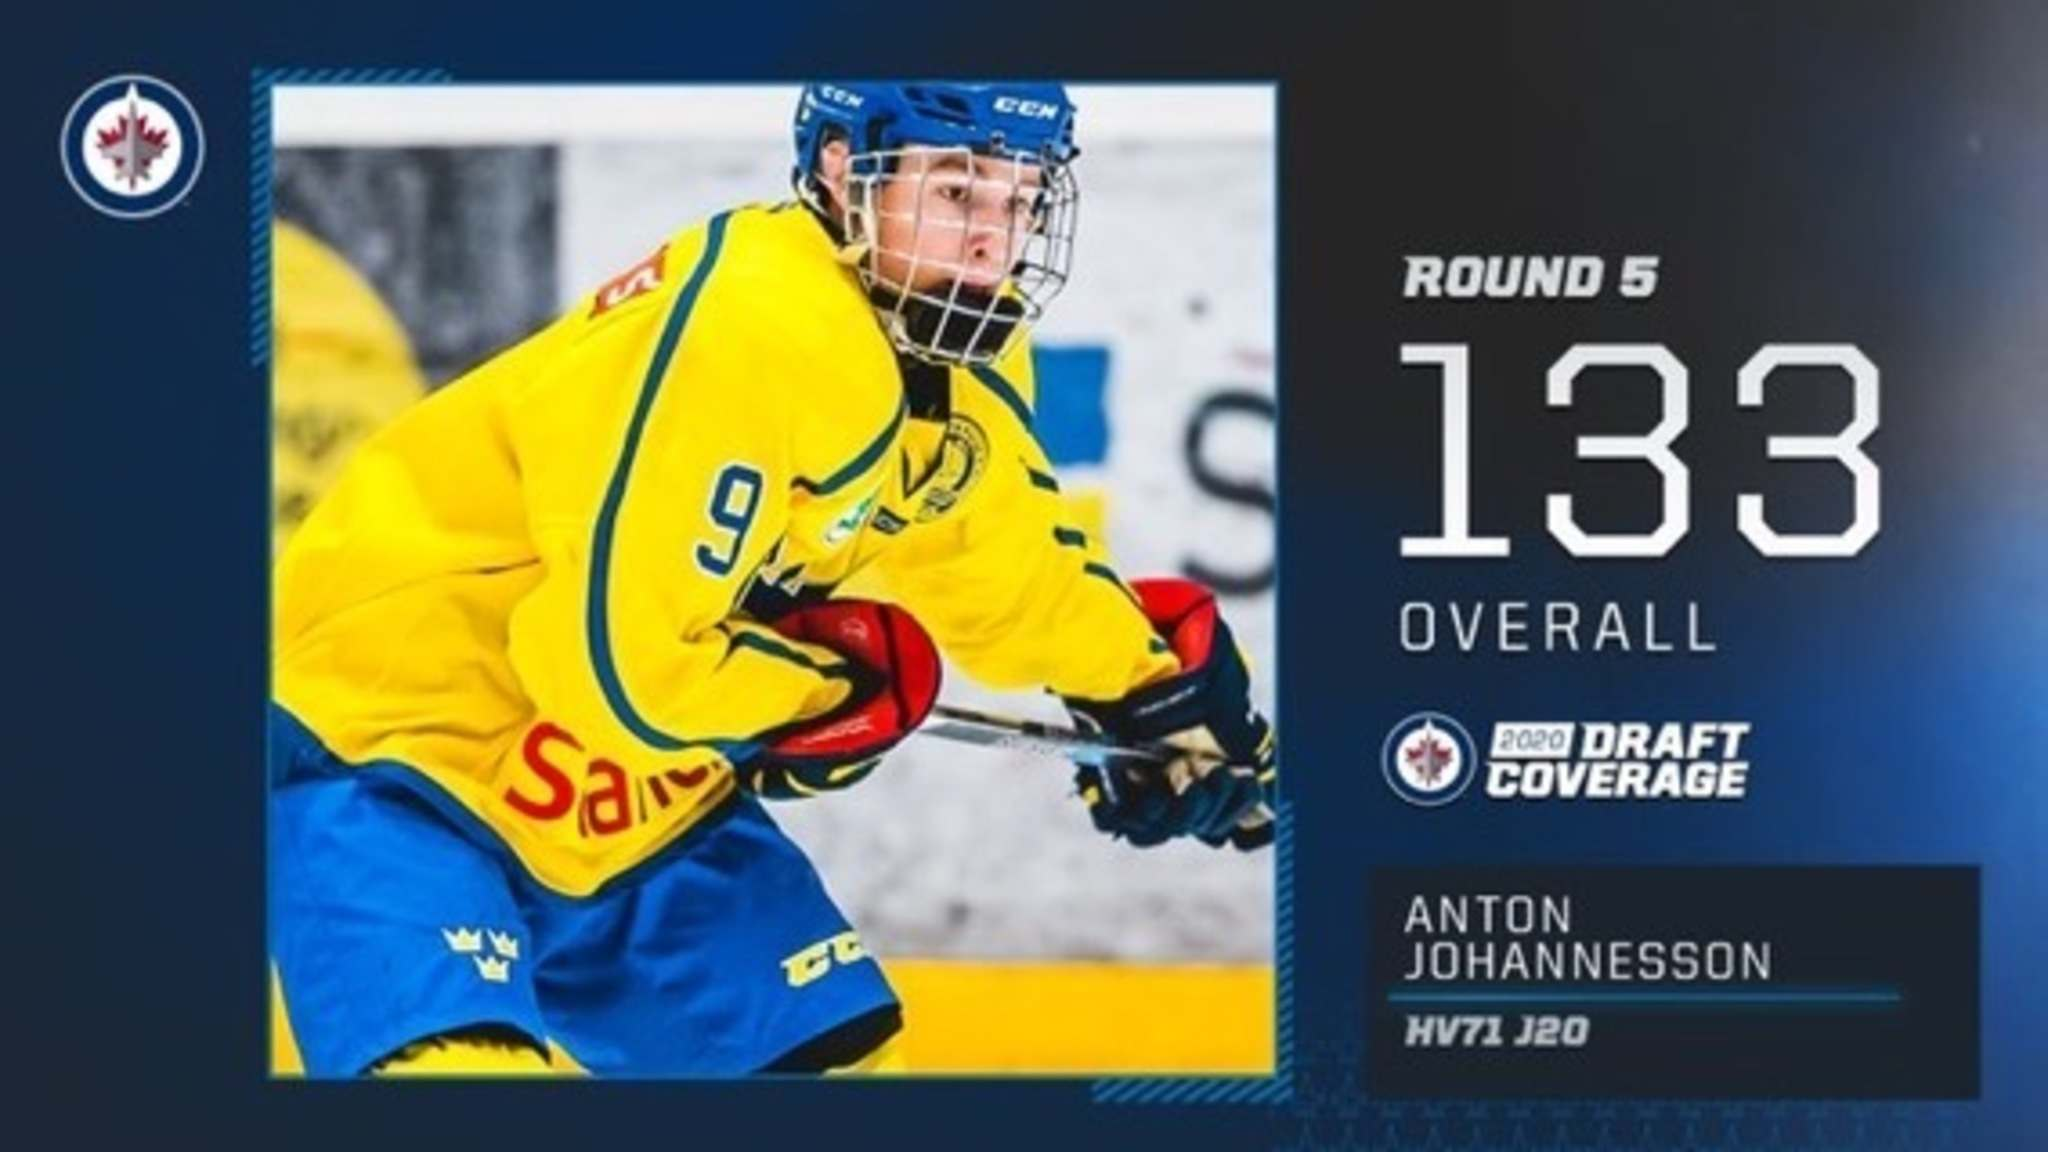 Anton Johannesson, an 18-year-old offensive defenceman, was the 133rd selection in the fifth round for the Jets.